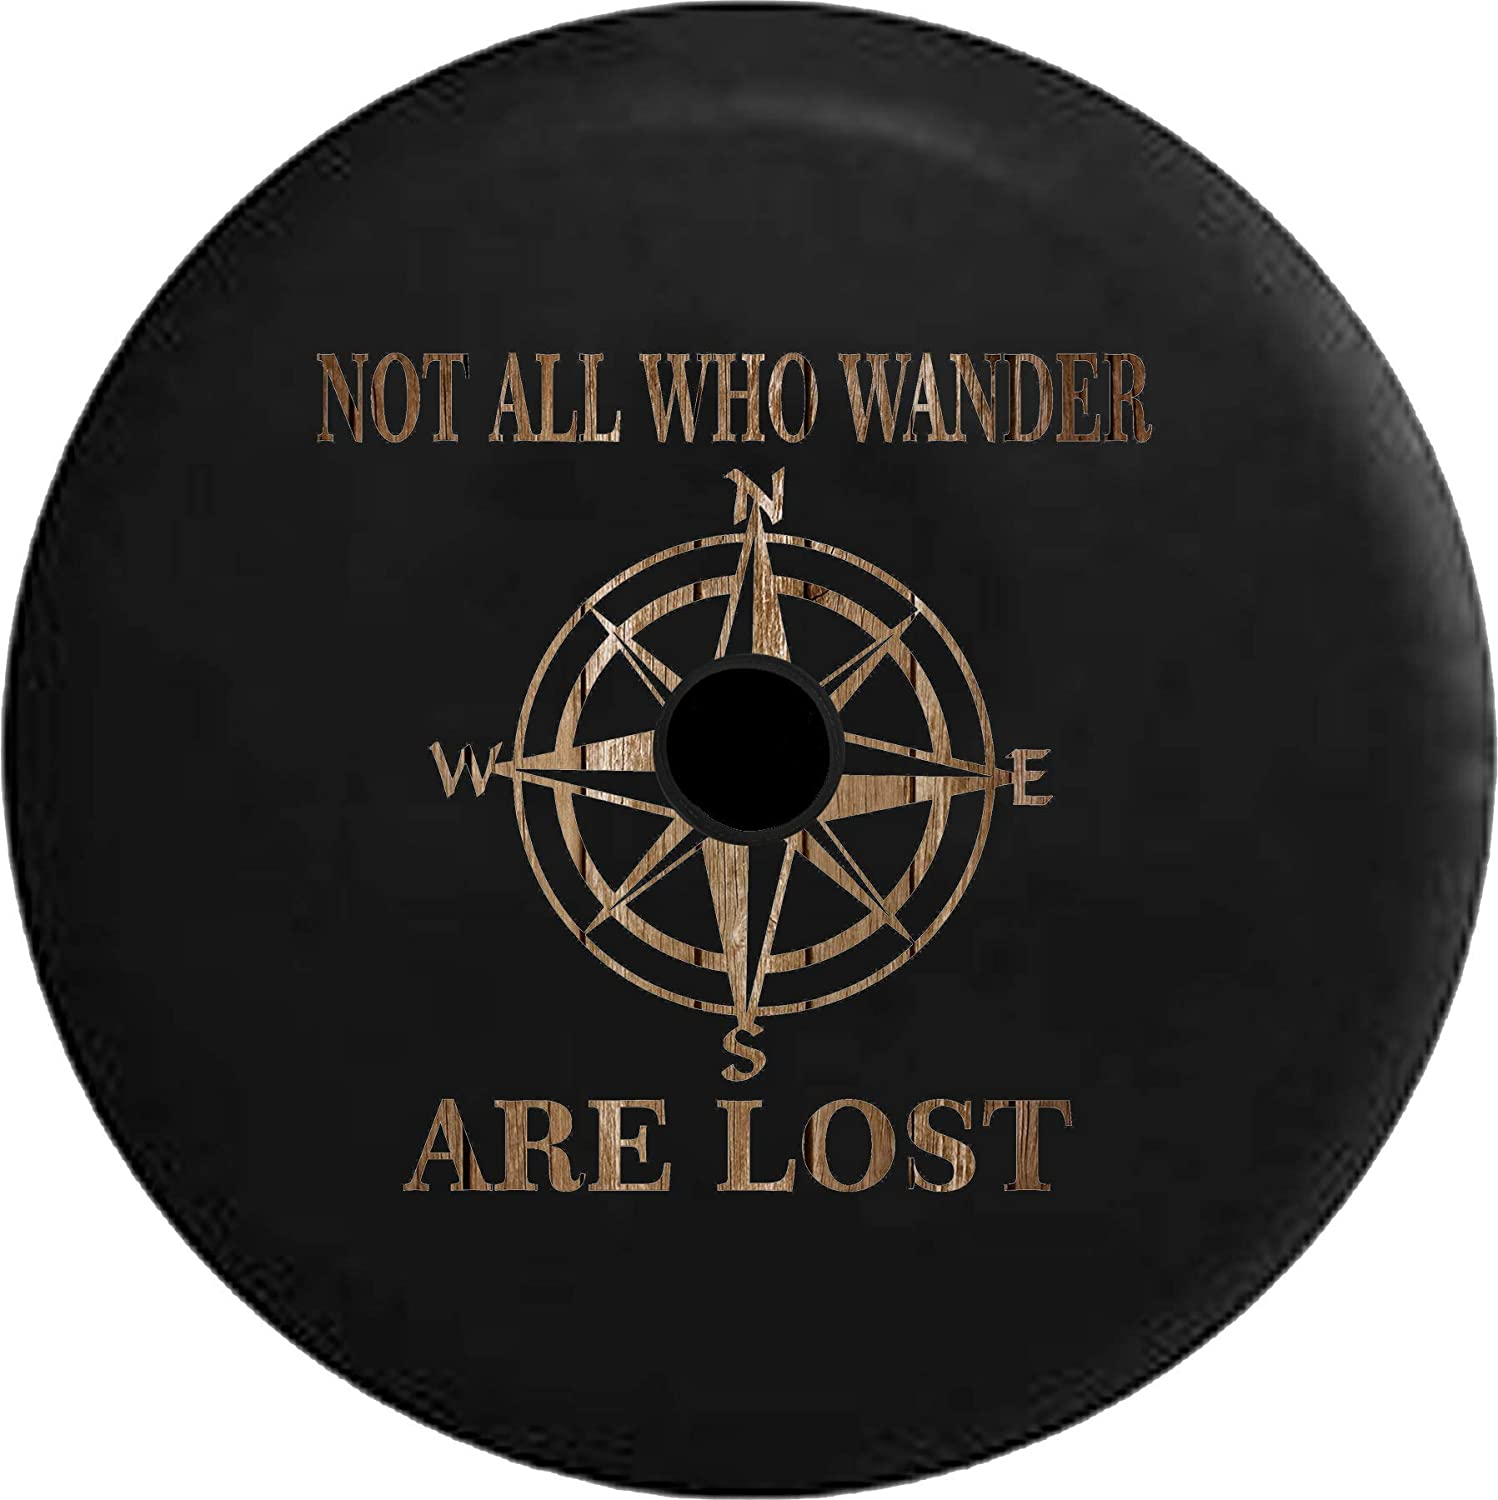 JL Spare Atlanta Mall Tire Cover Not All Super sale period limited Wood Wander Spar Distressed Barn Who